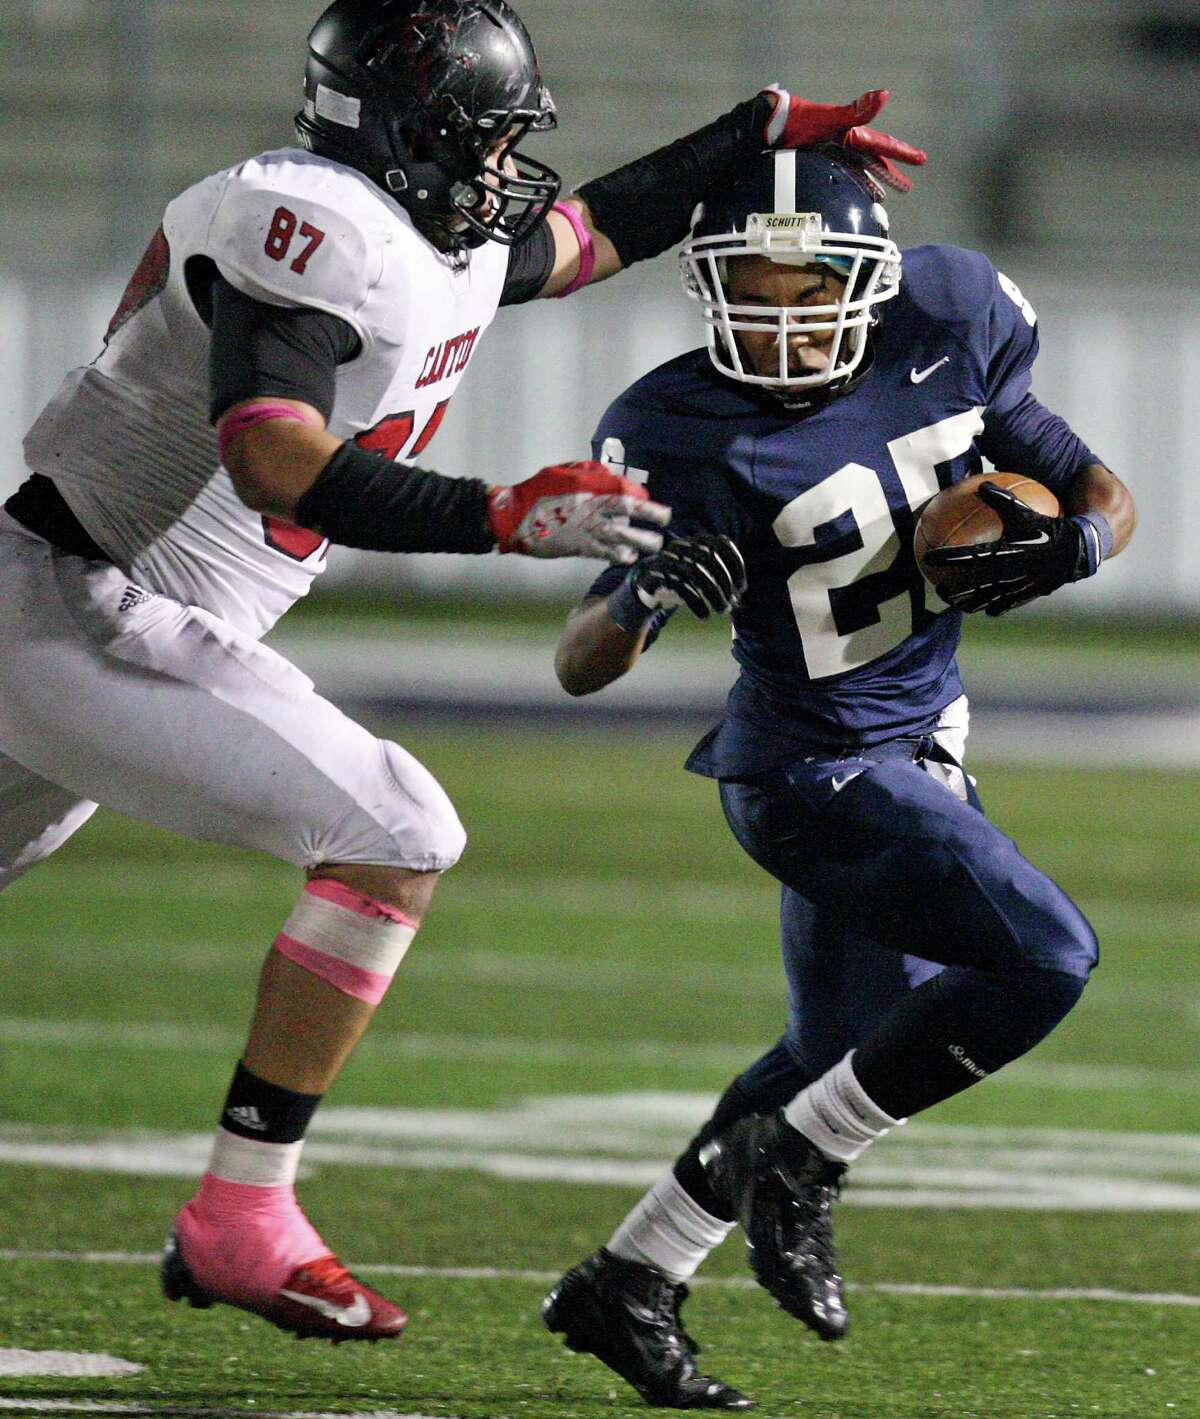 Smithson Valley's Cameron Jones looks for running room around New Braunfels Canyon's Ernest Gonzales during first half action Friday Oct. 26, 2012 at Ranger Stadium in Spring Branch, Tx.